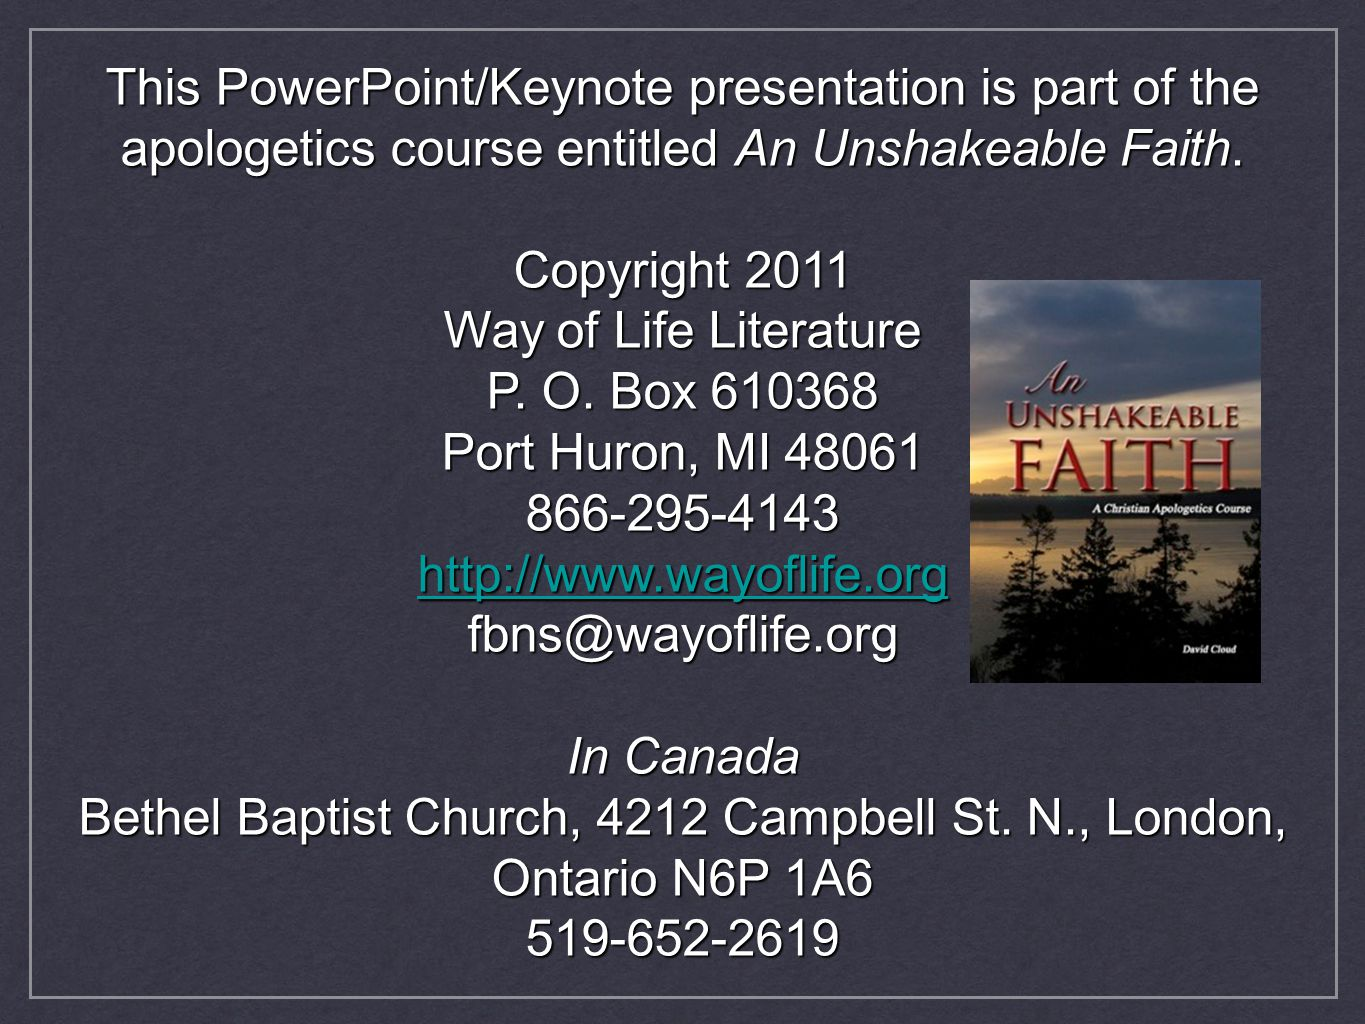 This PowerPoint/Keynote presentation is part of the apologetics course entitled An Unshakeable Faith.